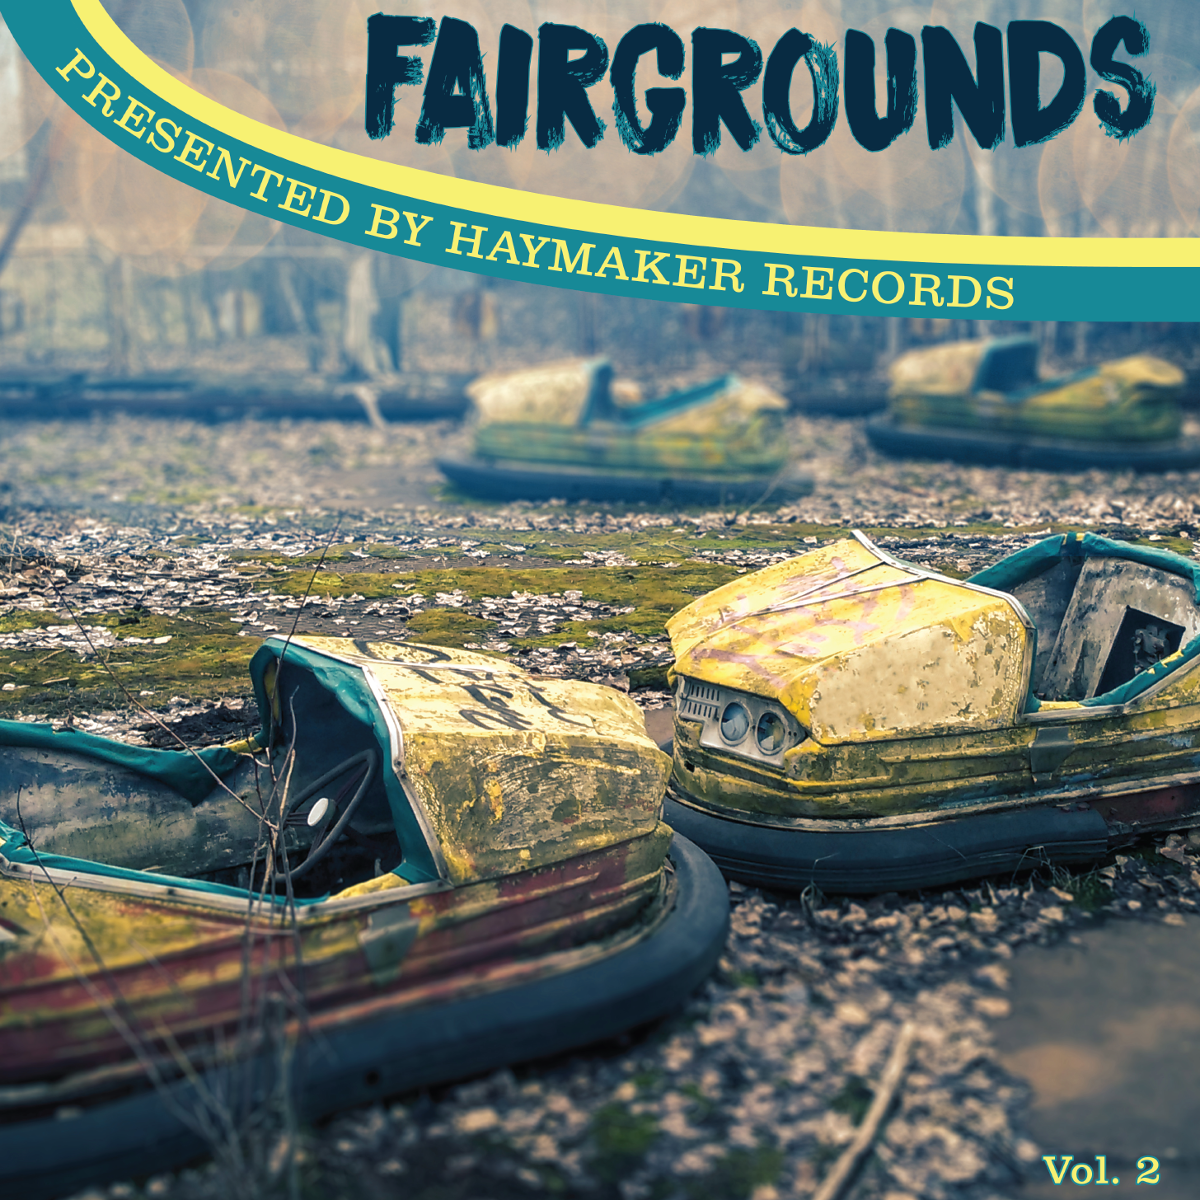 Fairgrounds Vol. 2